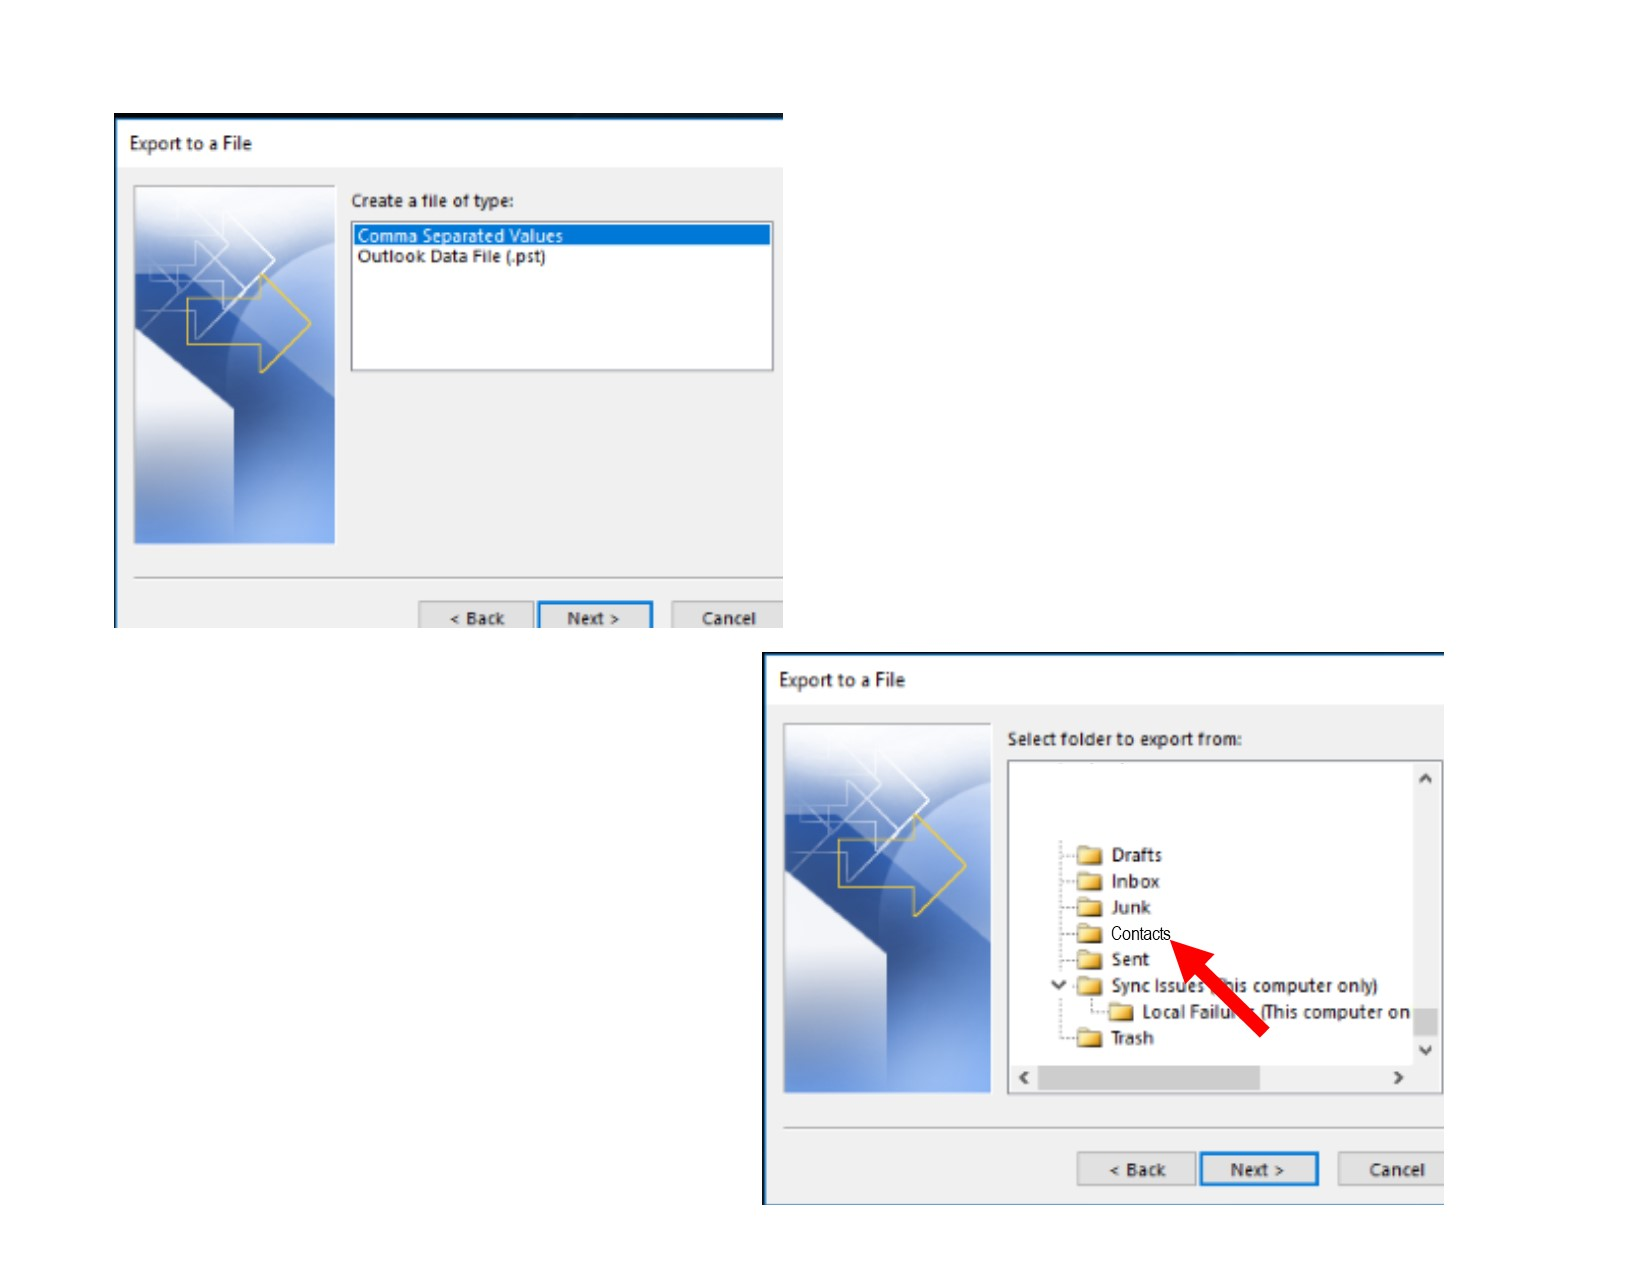 Export to a File (Select Comma Separated Values or Outlook Data File)> Export to a File (Select folder to export from: Contacts Folder--scroll until you find your contacts)> Browse until you find the file folder to store the contacts on the external drive>Finish